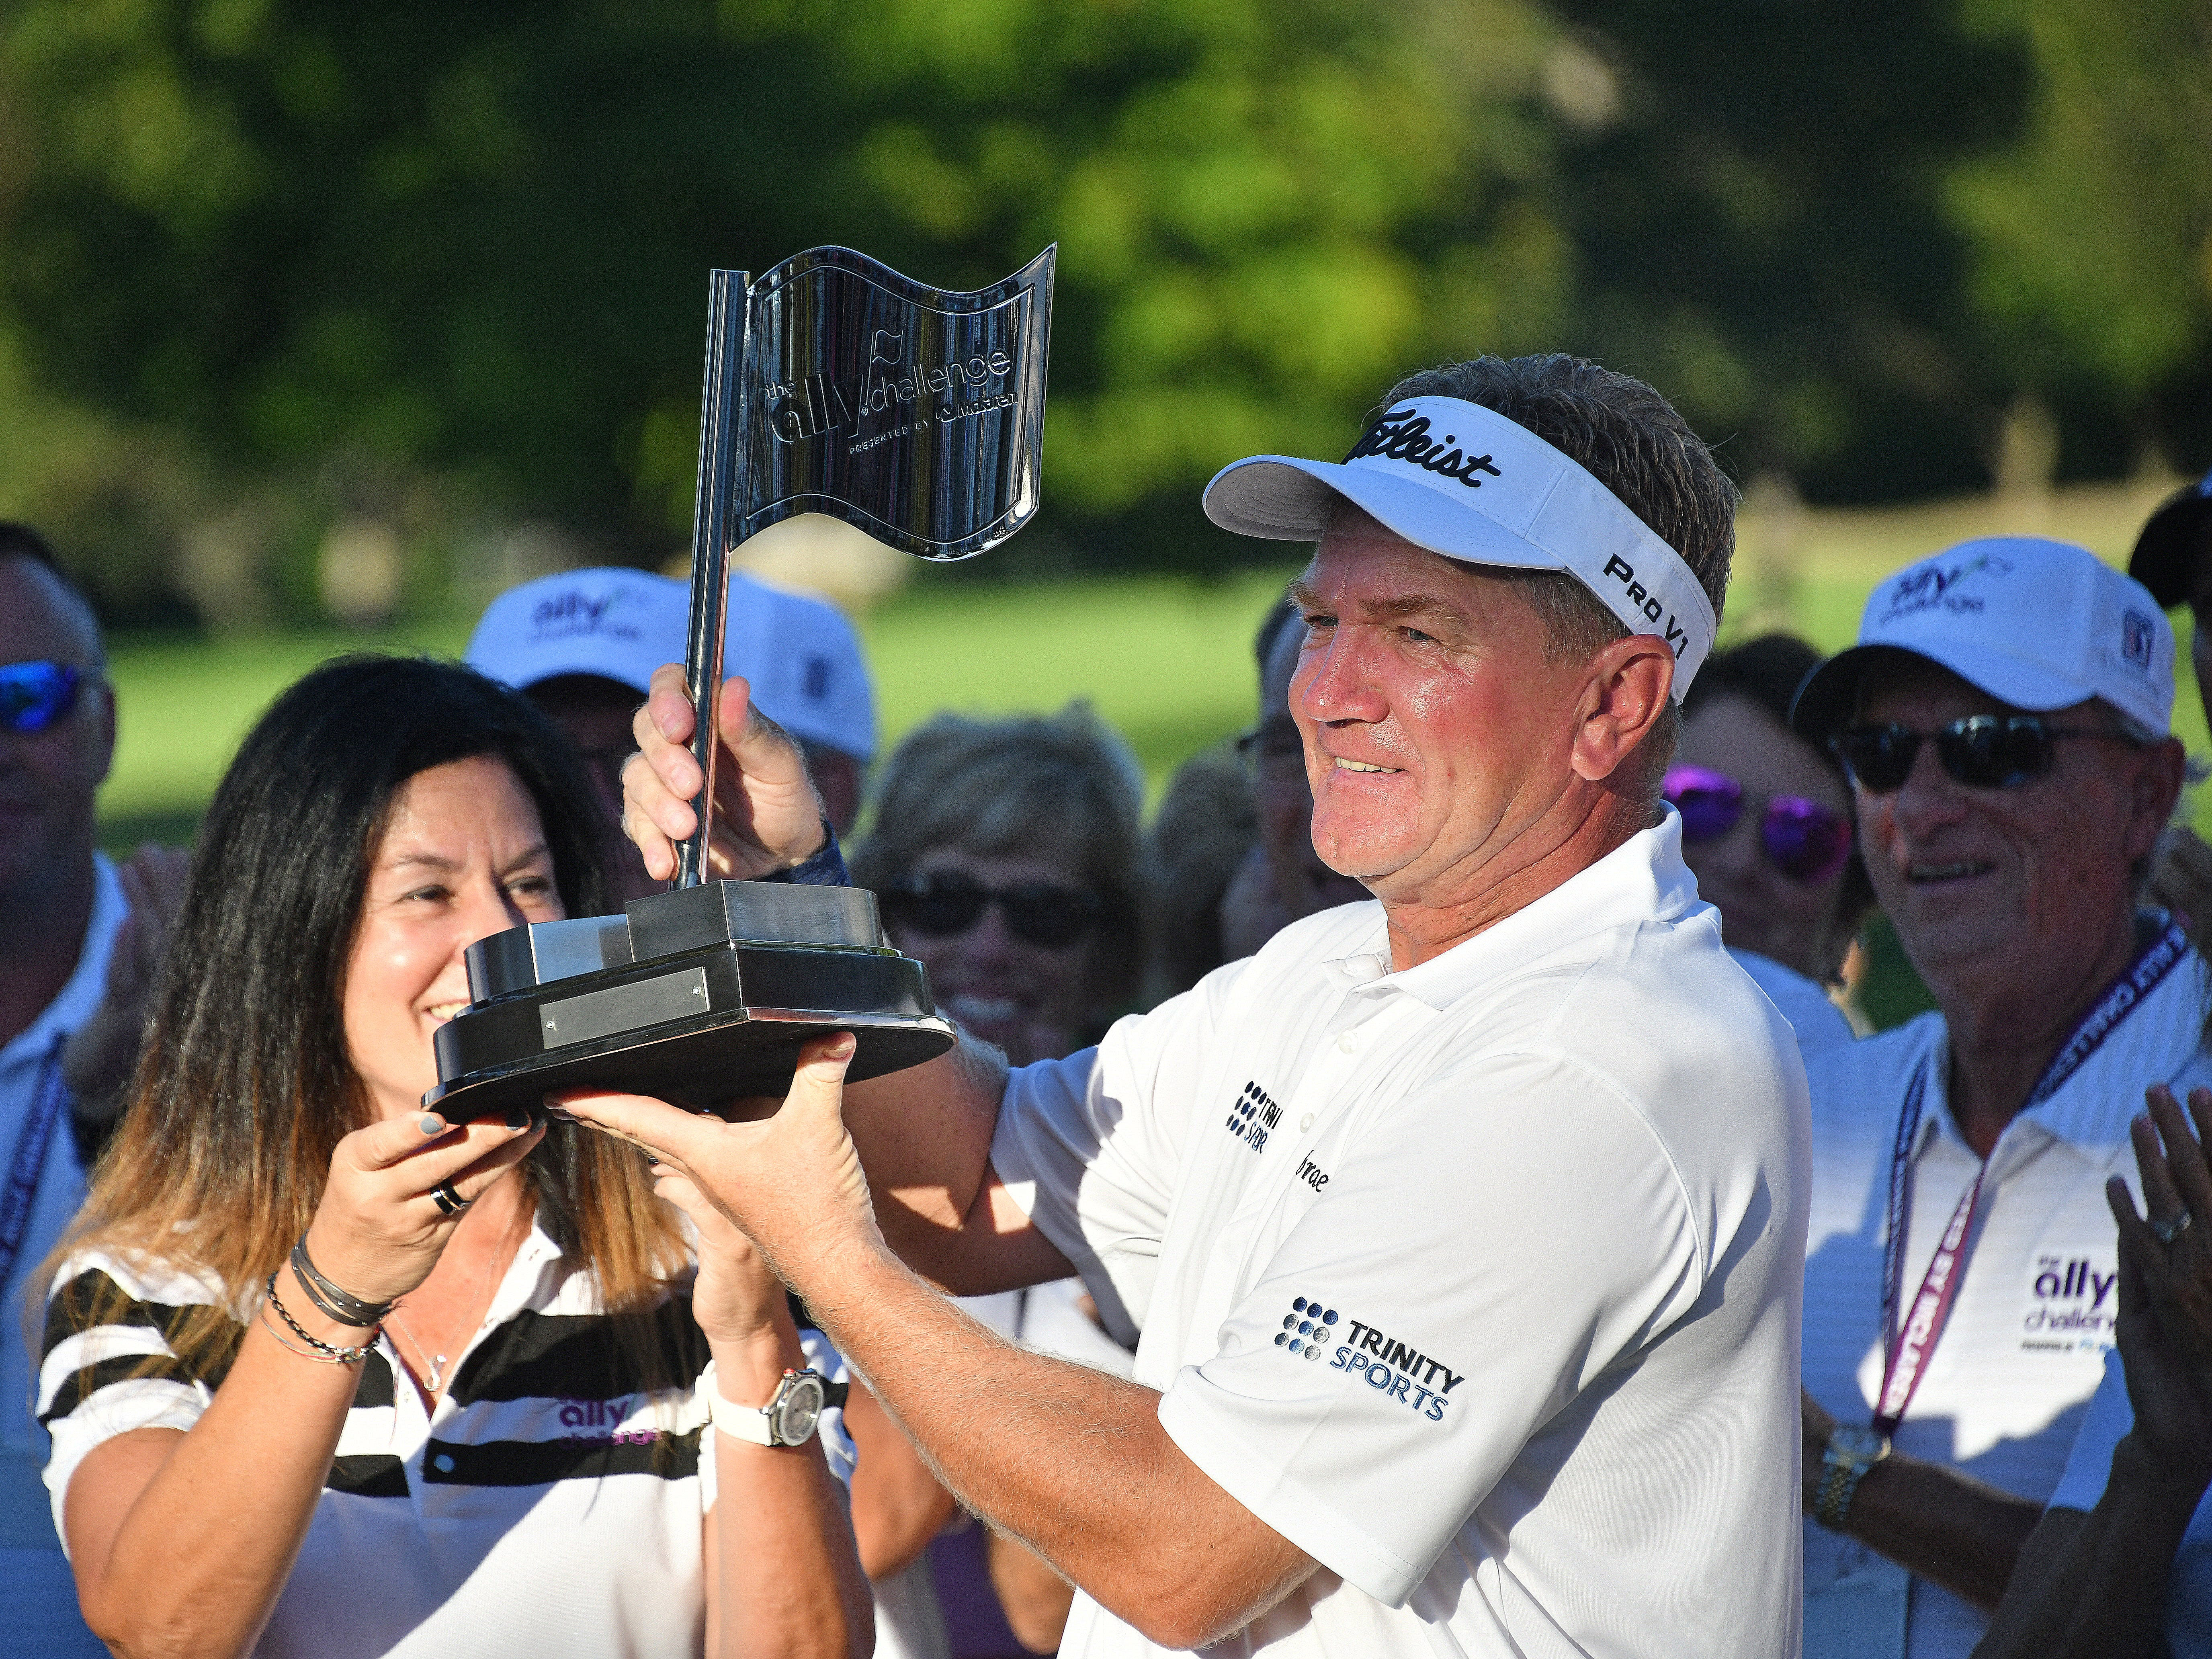 Paul Broadhust wins the Ally Challenge played at Warwick Hills Golf and Country Club in Grand Blanc on Sunday, Sept 16, 2018, with a birdie putt that sealed the deal on the 18th hole. (Dale G.Young/Detroit News) 2018.